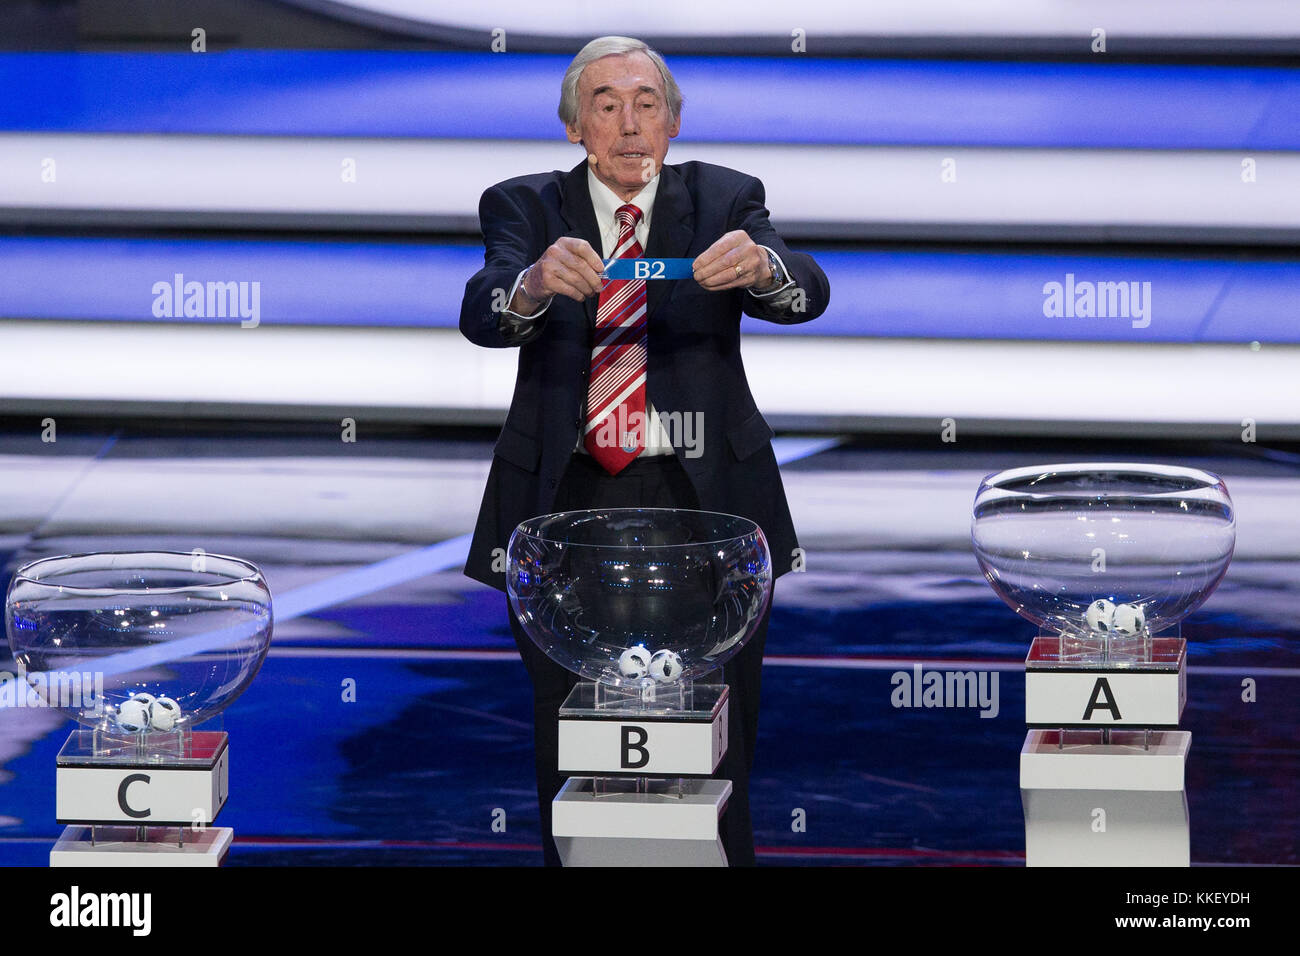 Moscow, Russia. 1st Dec, 2017. England's former goalkeeper Gordon Banks shows the 'B2' slip during the - Stock Image